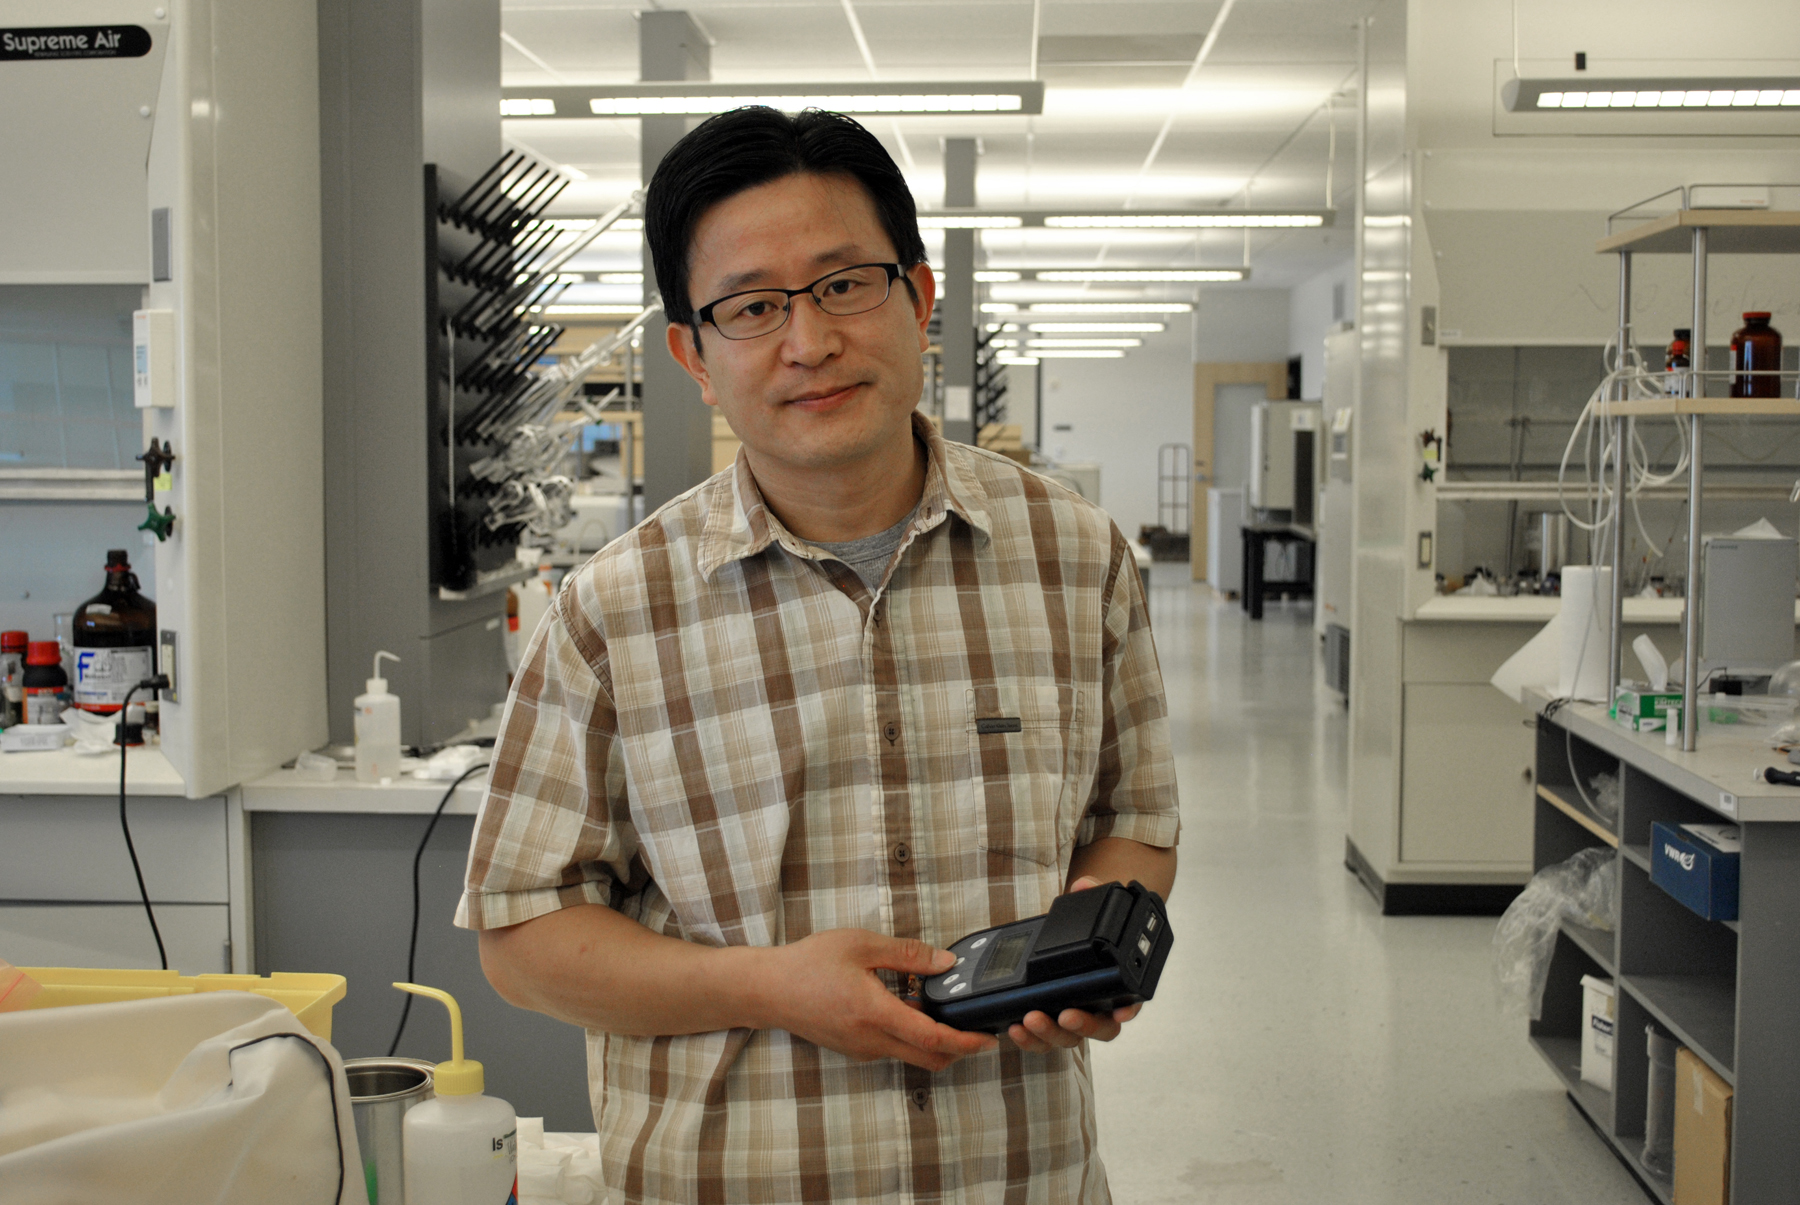 Ling Zang, USTAR Professor of Nanotechnology at the University of Utah, is developing a new way to detect mercury. He is one of many faculty members developing innovative technologies that are available for licensing and commercial development.